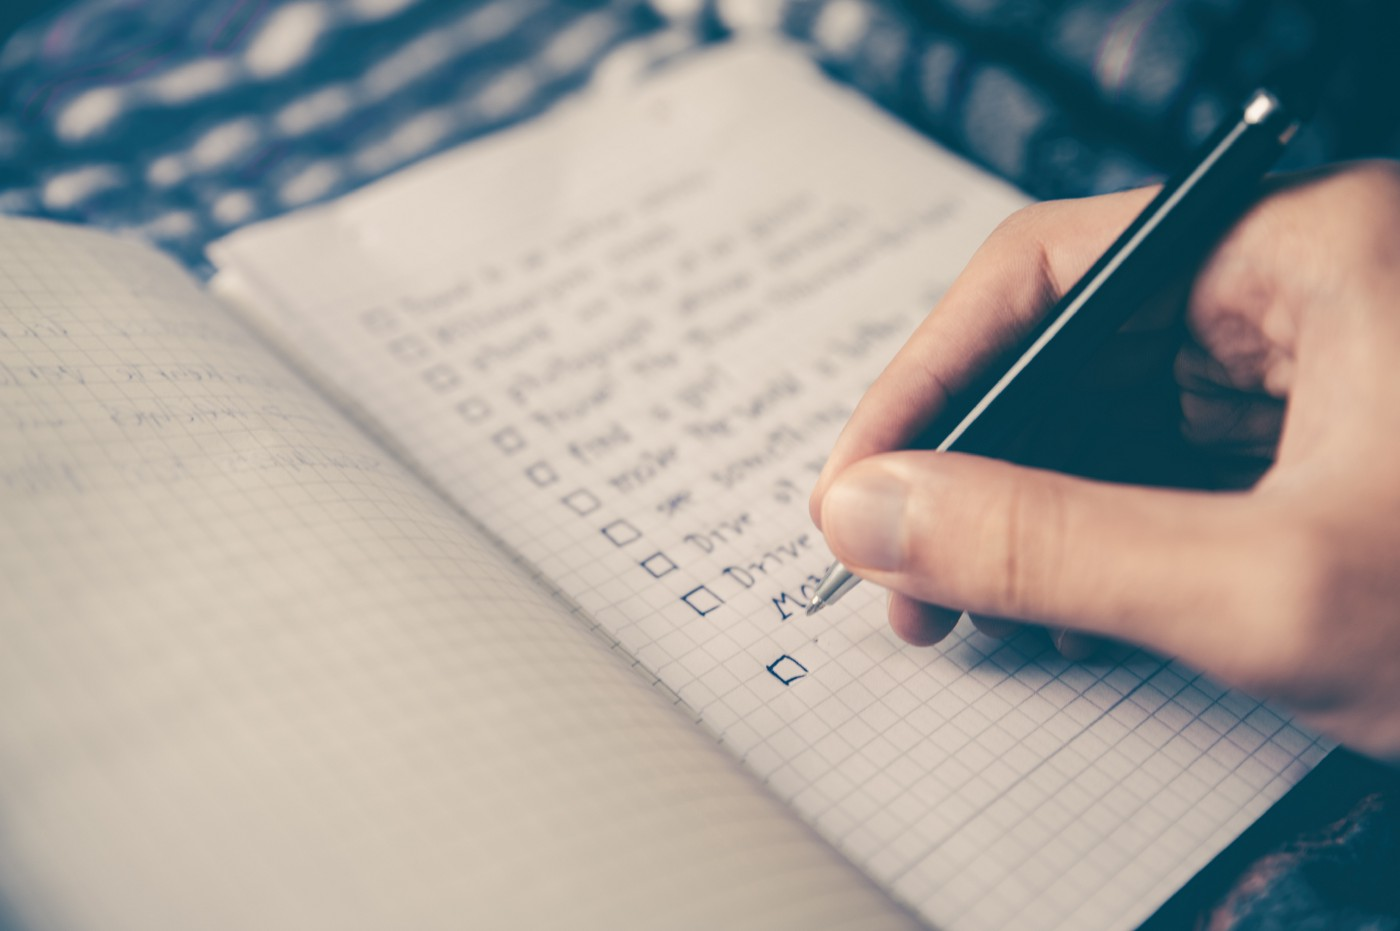 To-do list being checked off with a pen.